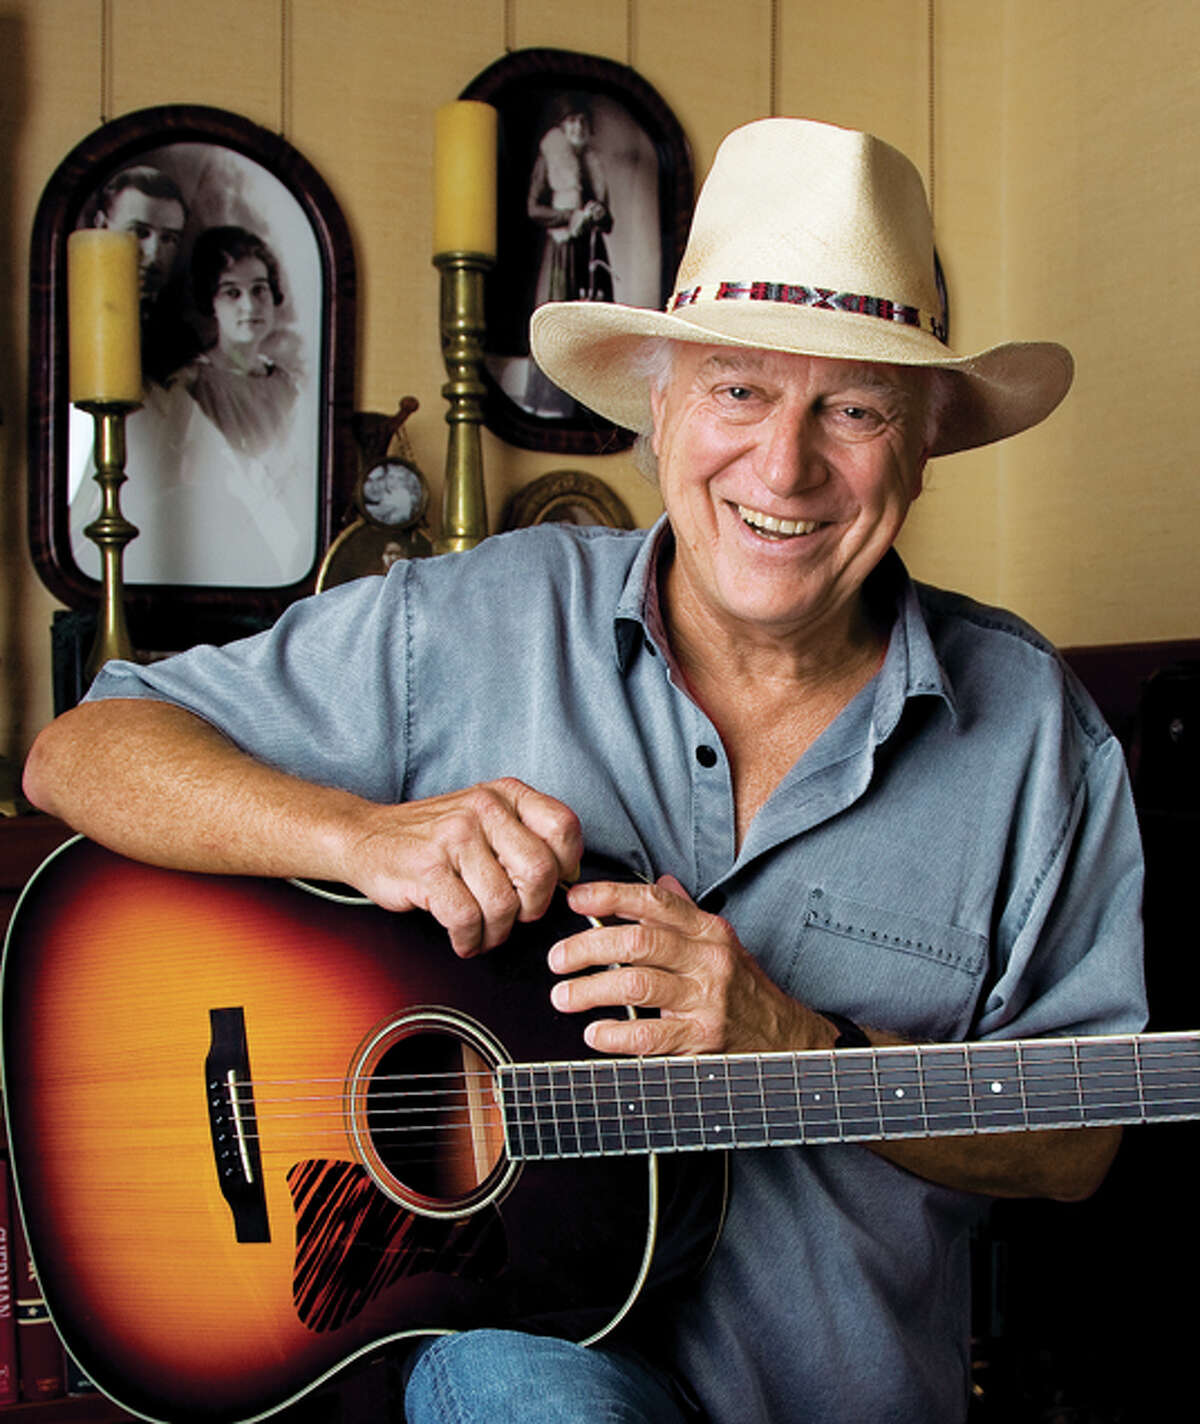 Country singer Jerry Jeff Walker, who wrote the pop song